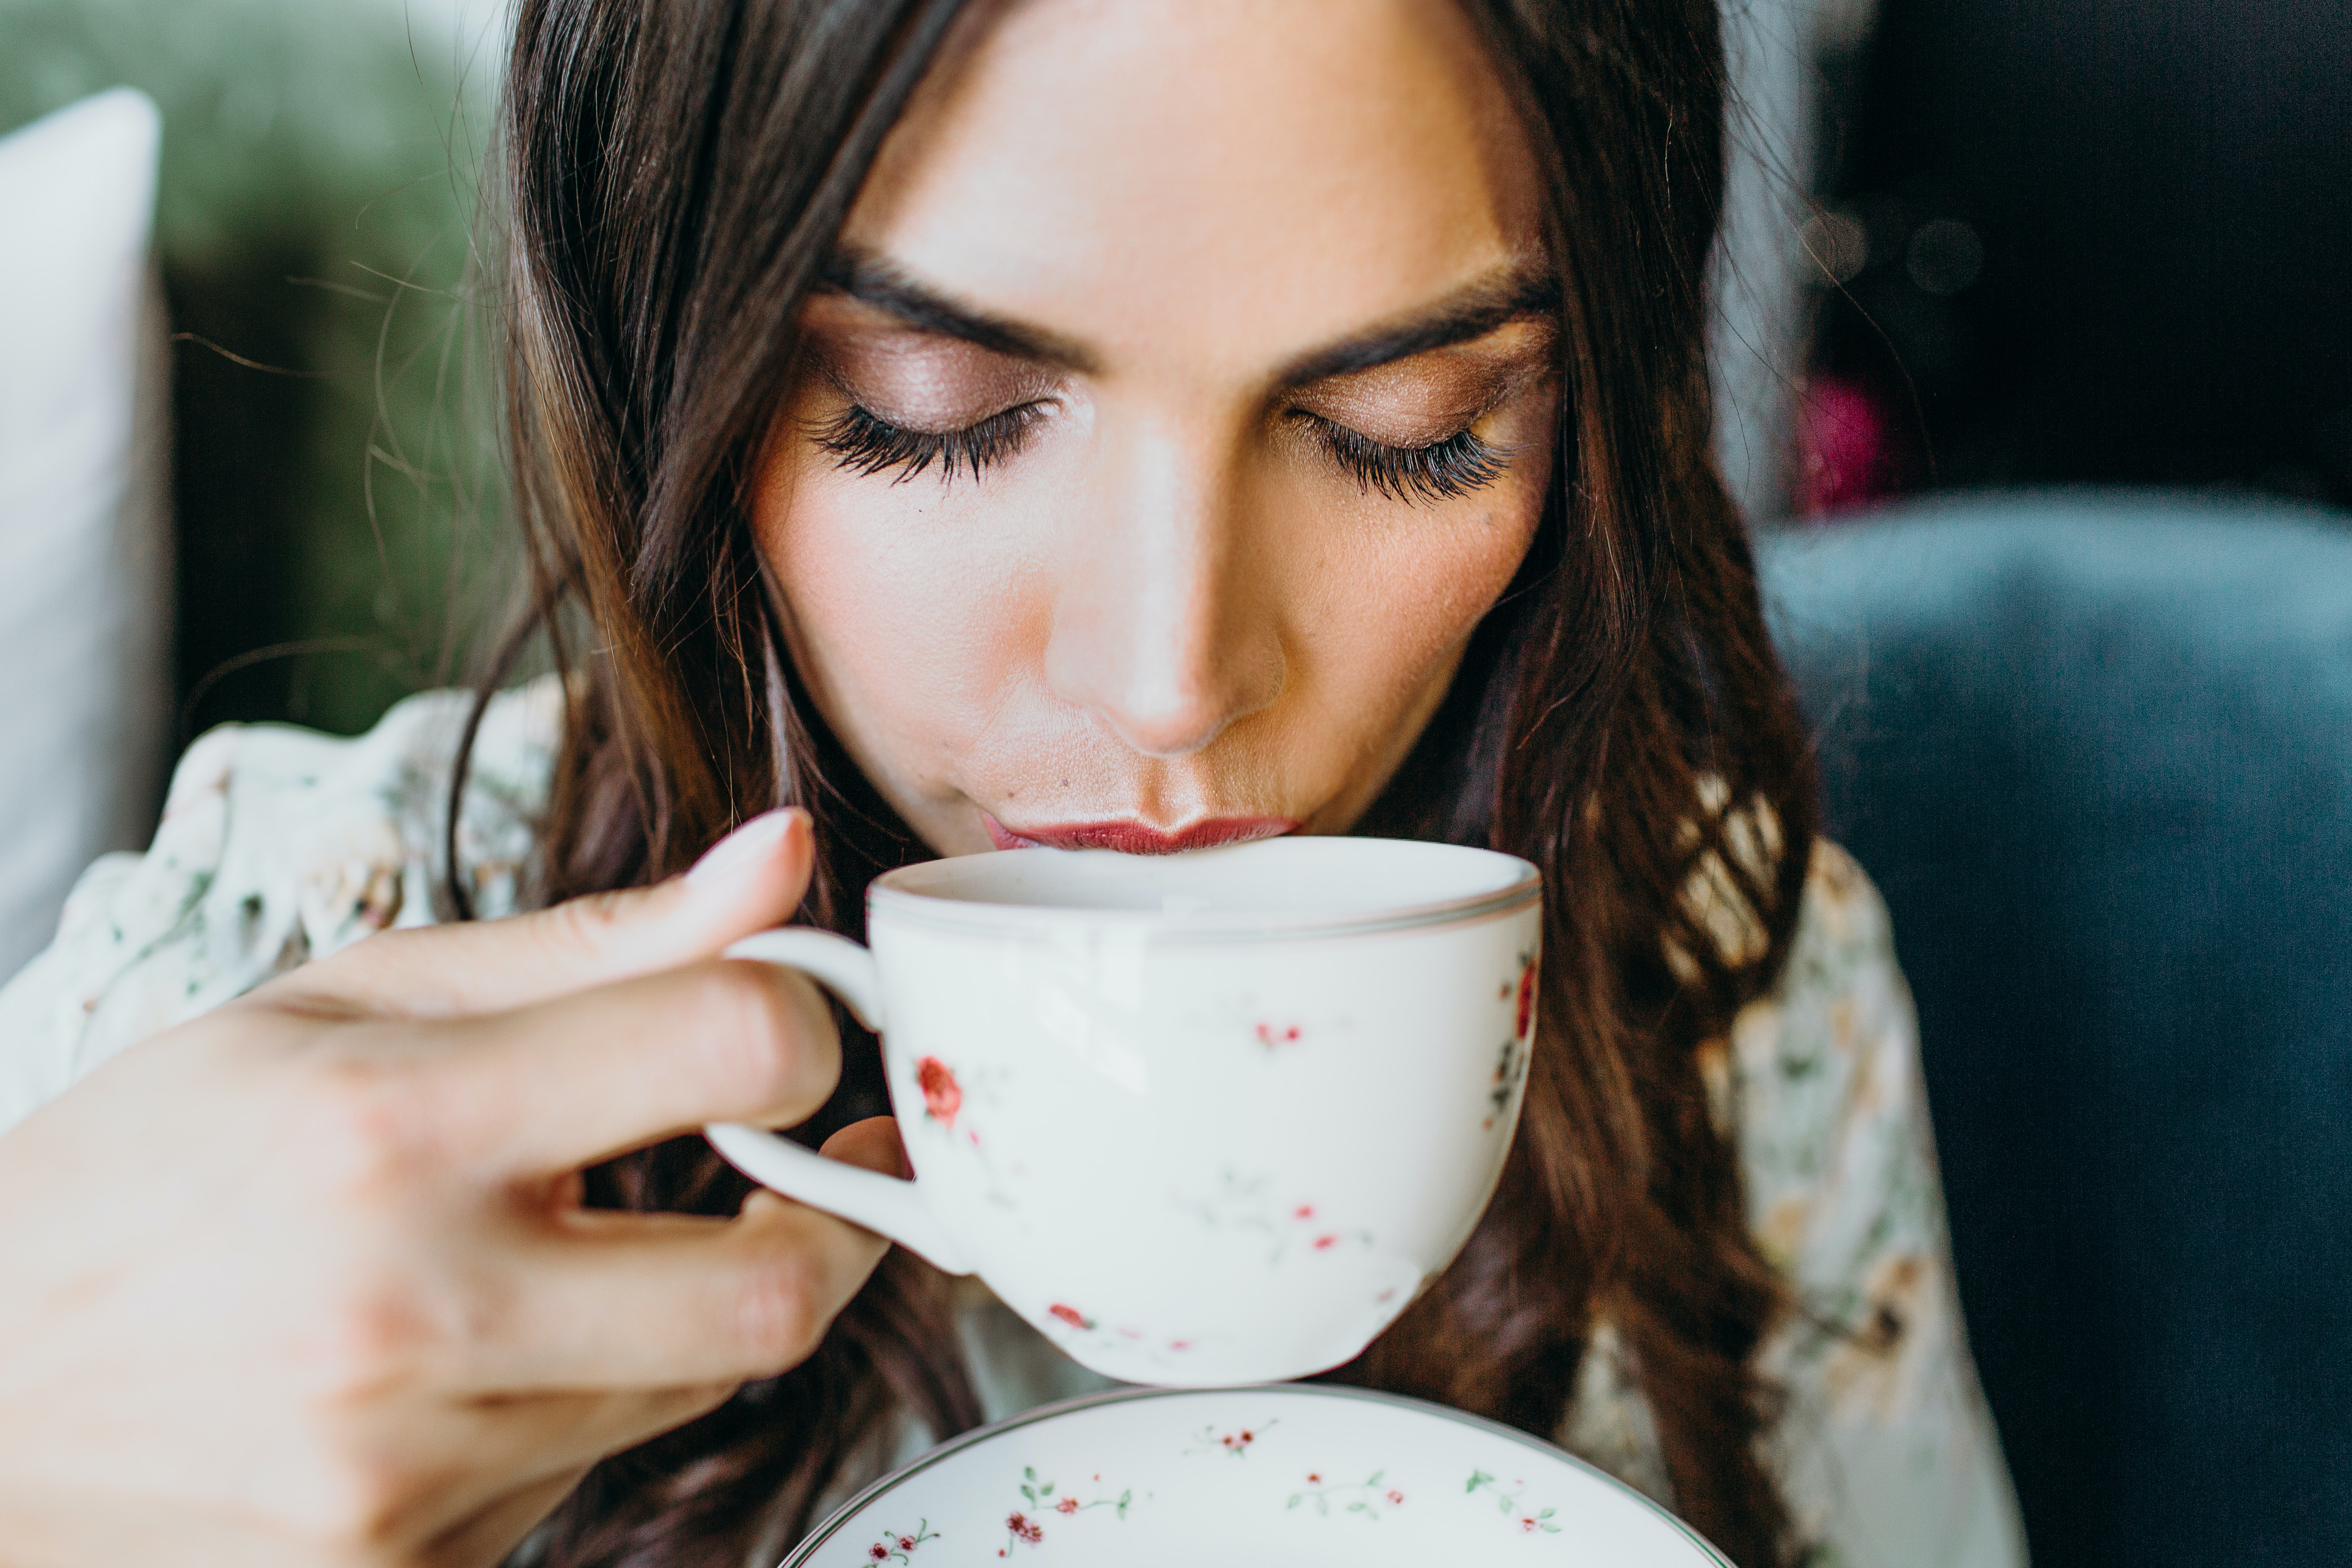 woman drinking using teacup